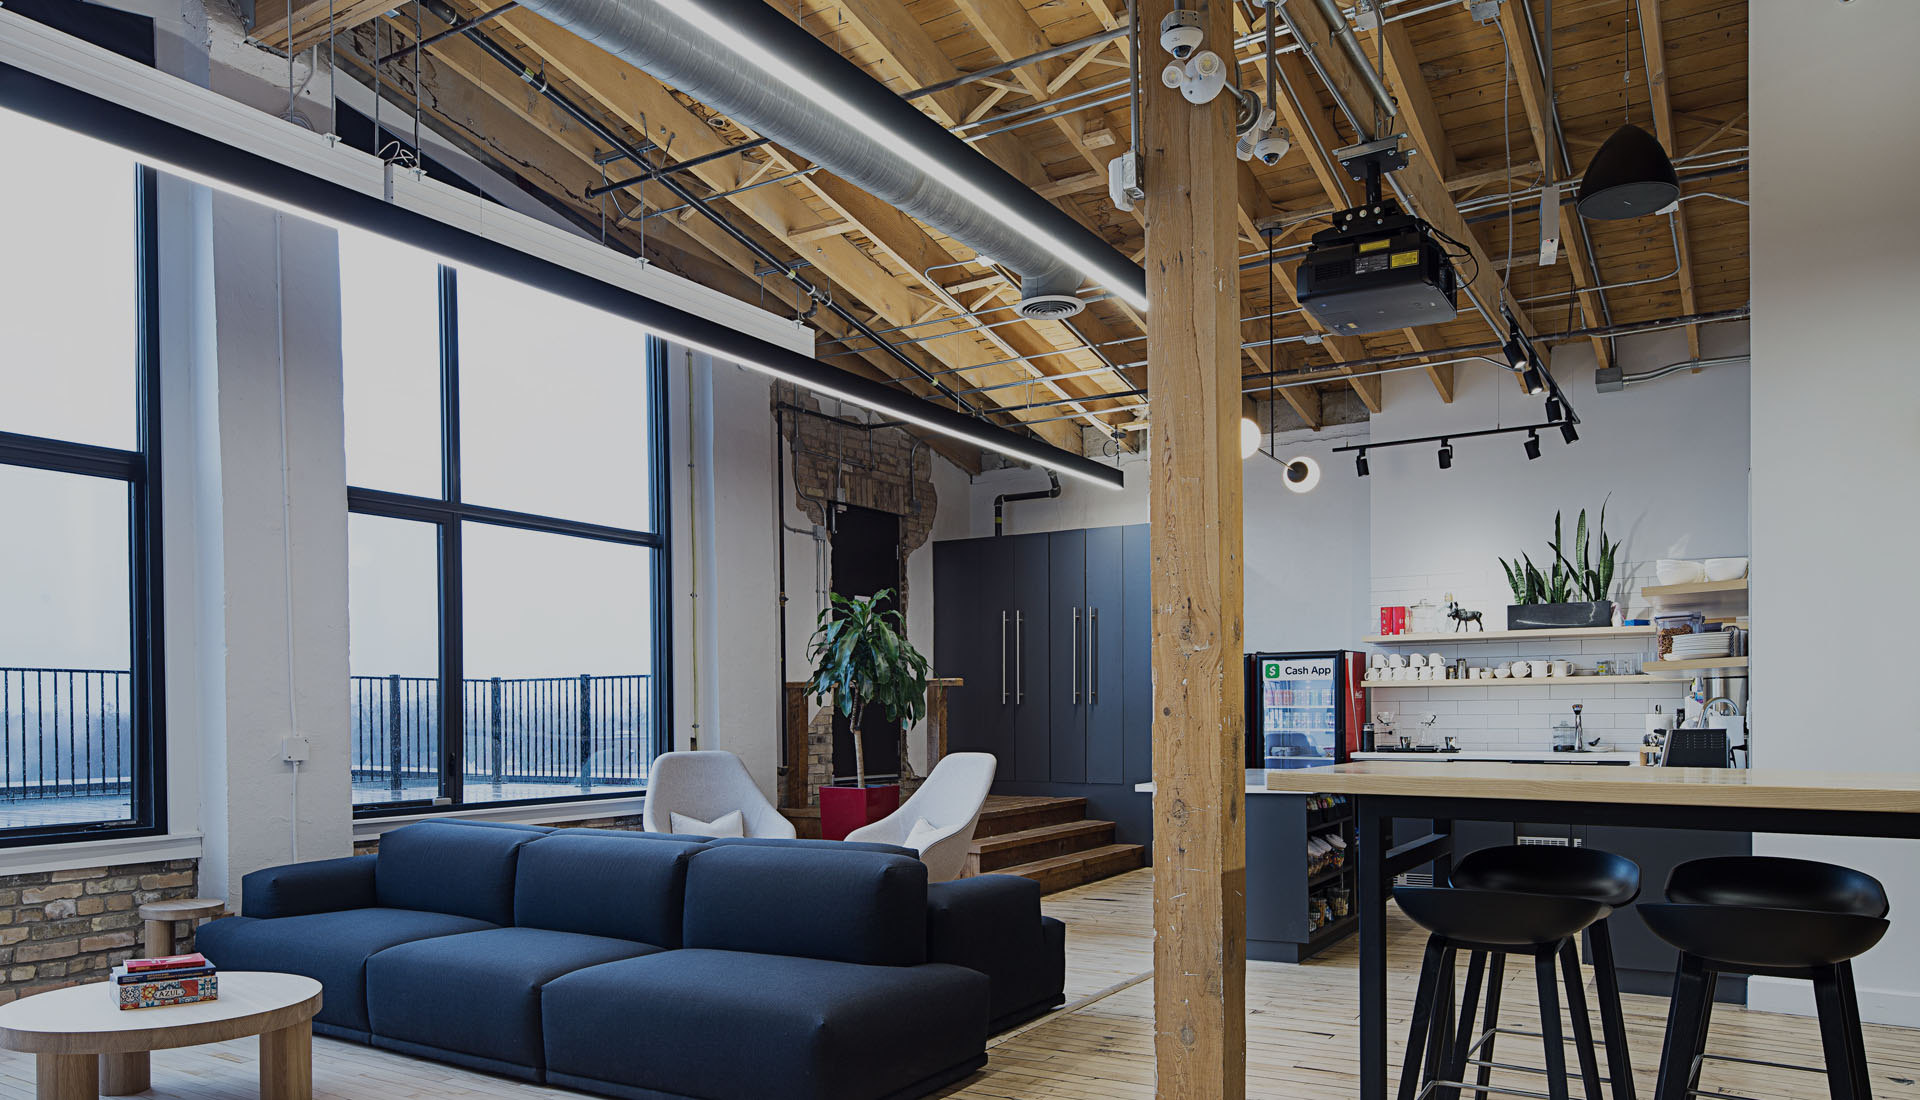 Office Space Interior Design Company Toronto, Vancouver, Halifax